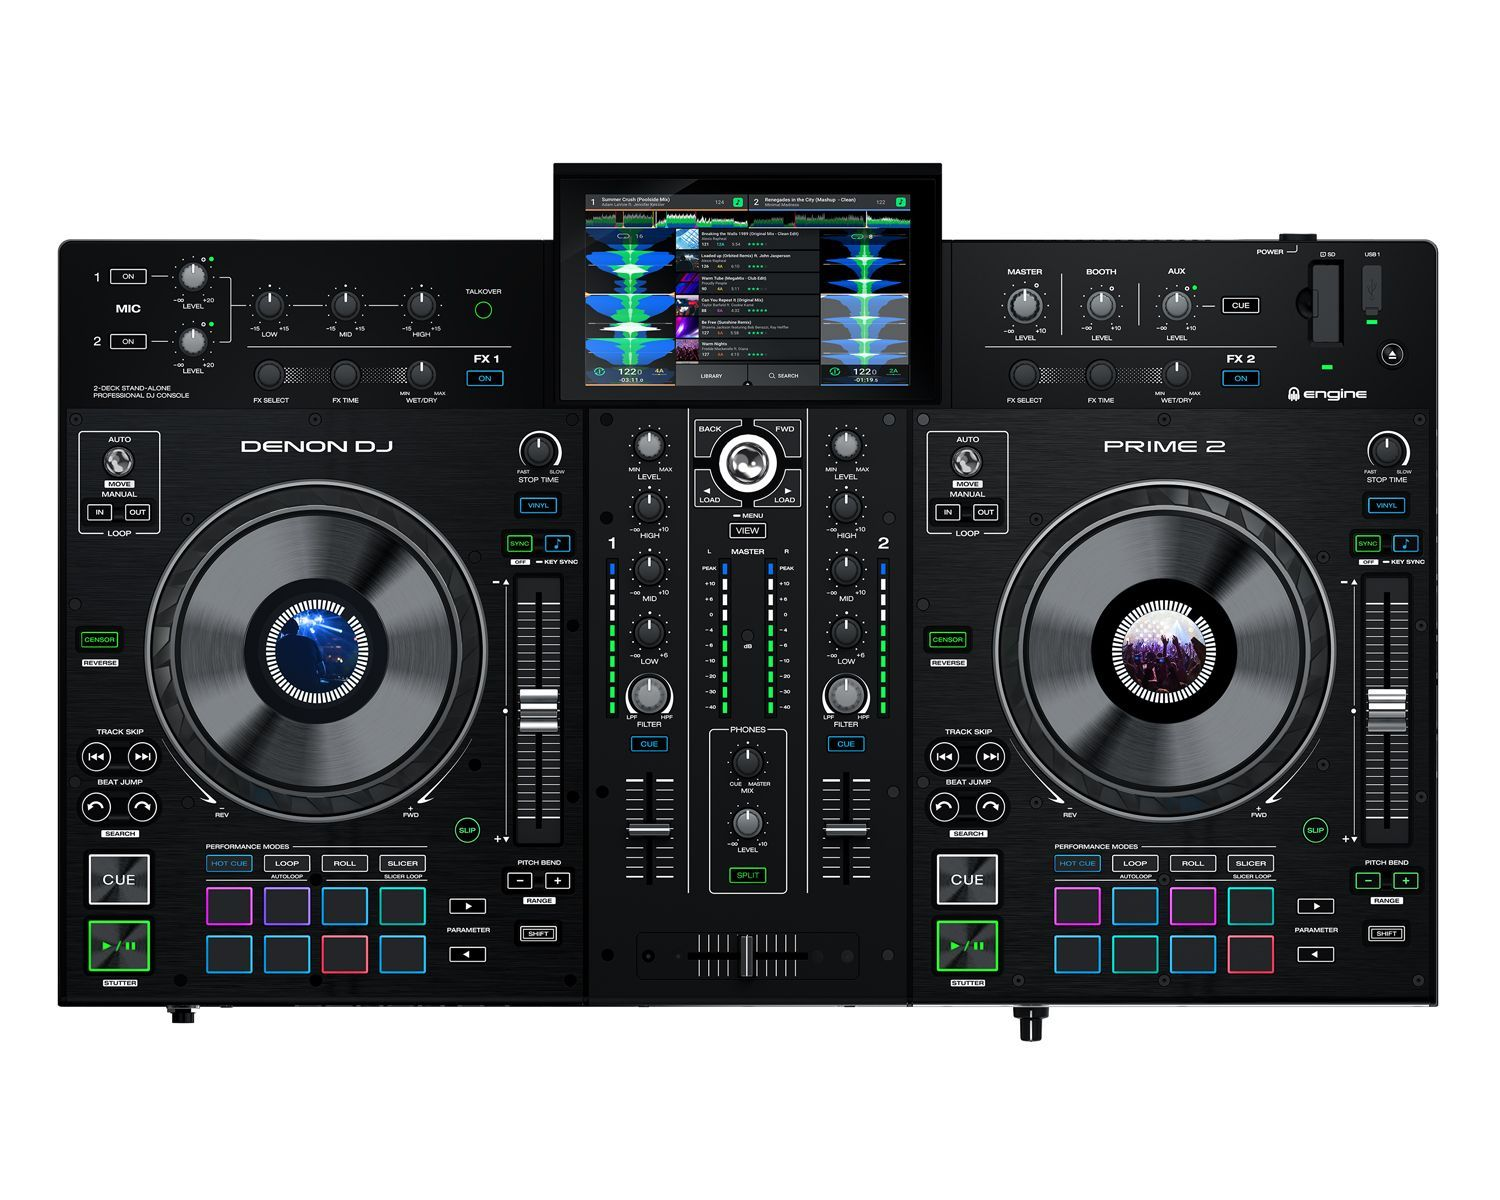 Essential Mobile DJ Workhorse Designed and engineered for the professional mobile, club and event DJ, Denon Prime 2 is a 2-deck, standalone smart DJ console powered by Engine OS and is WiFi enabled for premier music streaming services with no need for a laptop computer. Embracing the future of DJ performance and technology, it features a 7-inch multi-touch, multi-gesture screen, extensive media source connectivity, 6-inch jog wheels with colour displays, plus expressive EQ, FX and creative workf